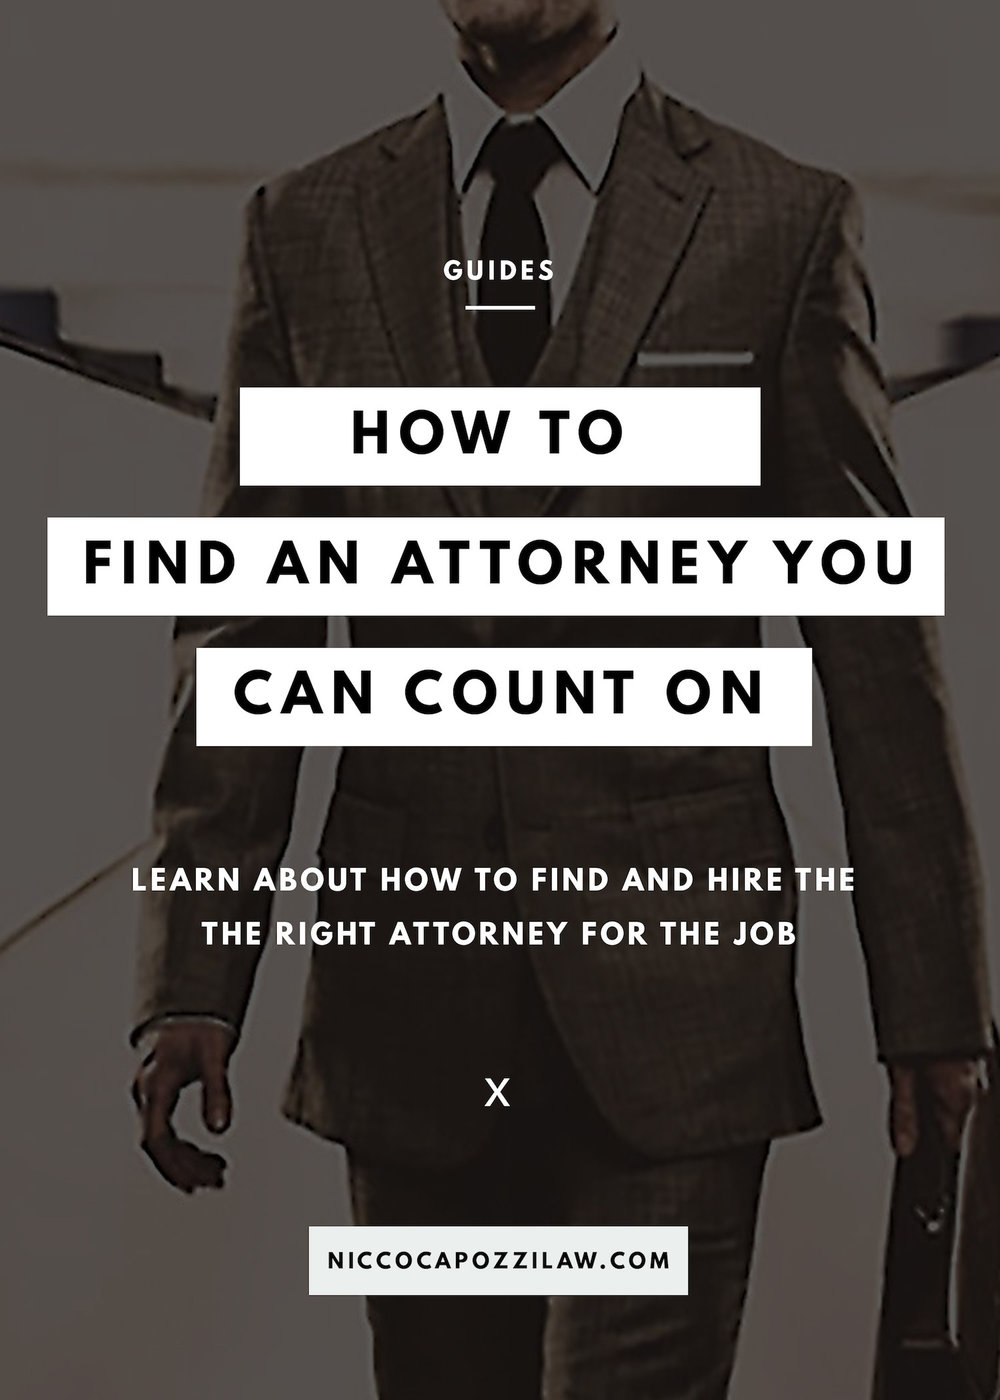 how to find an attorney you can count on.jpg